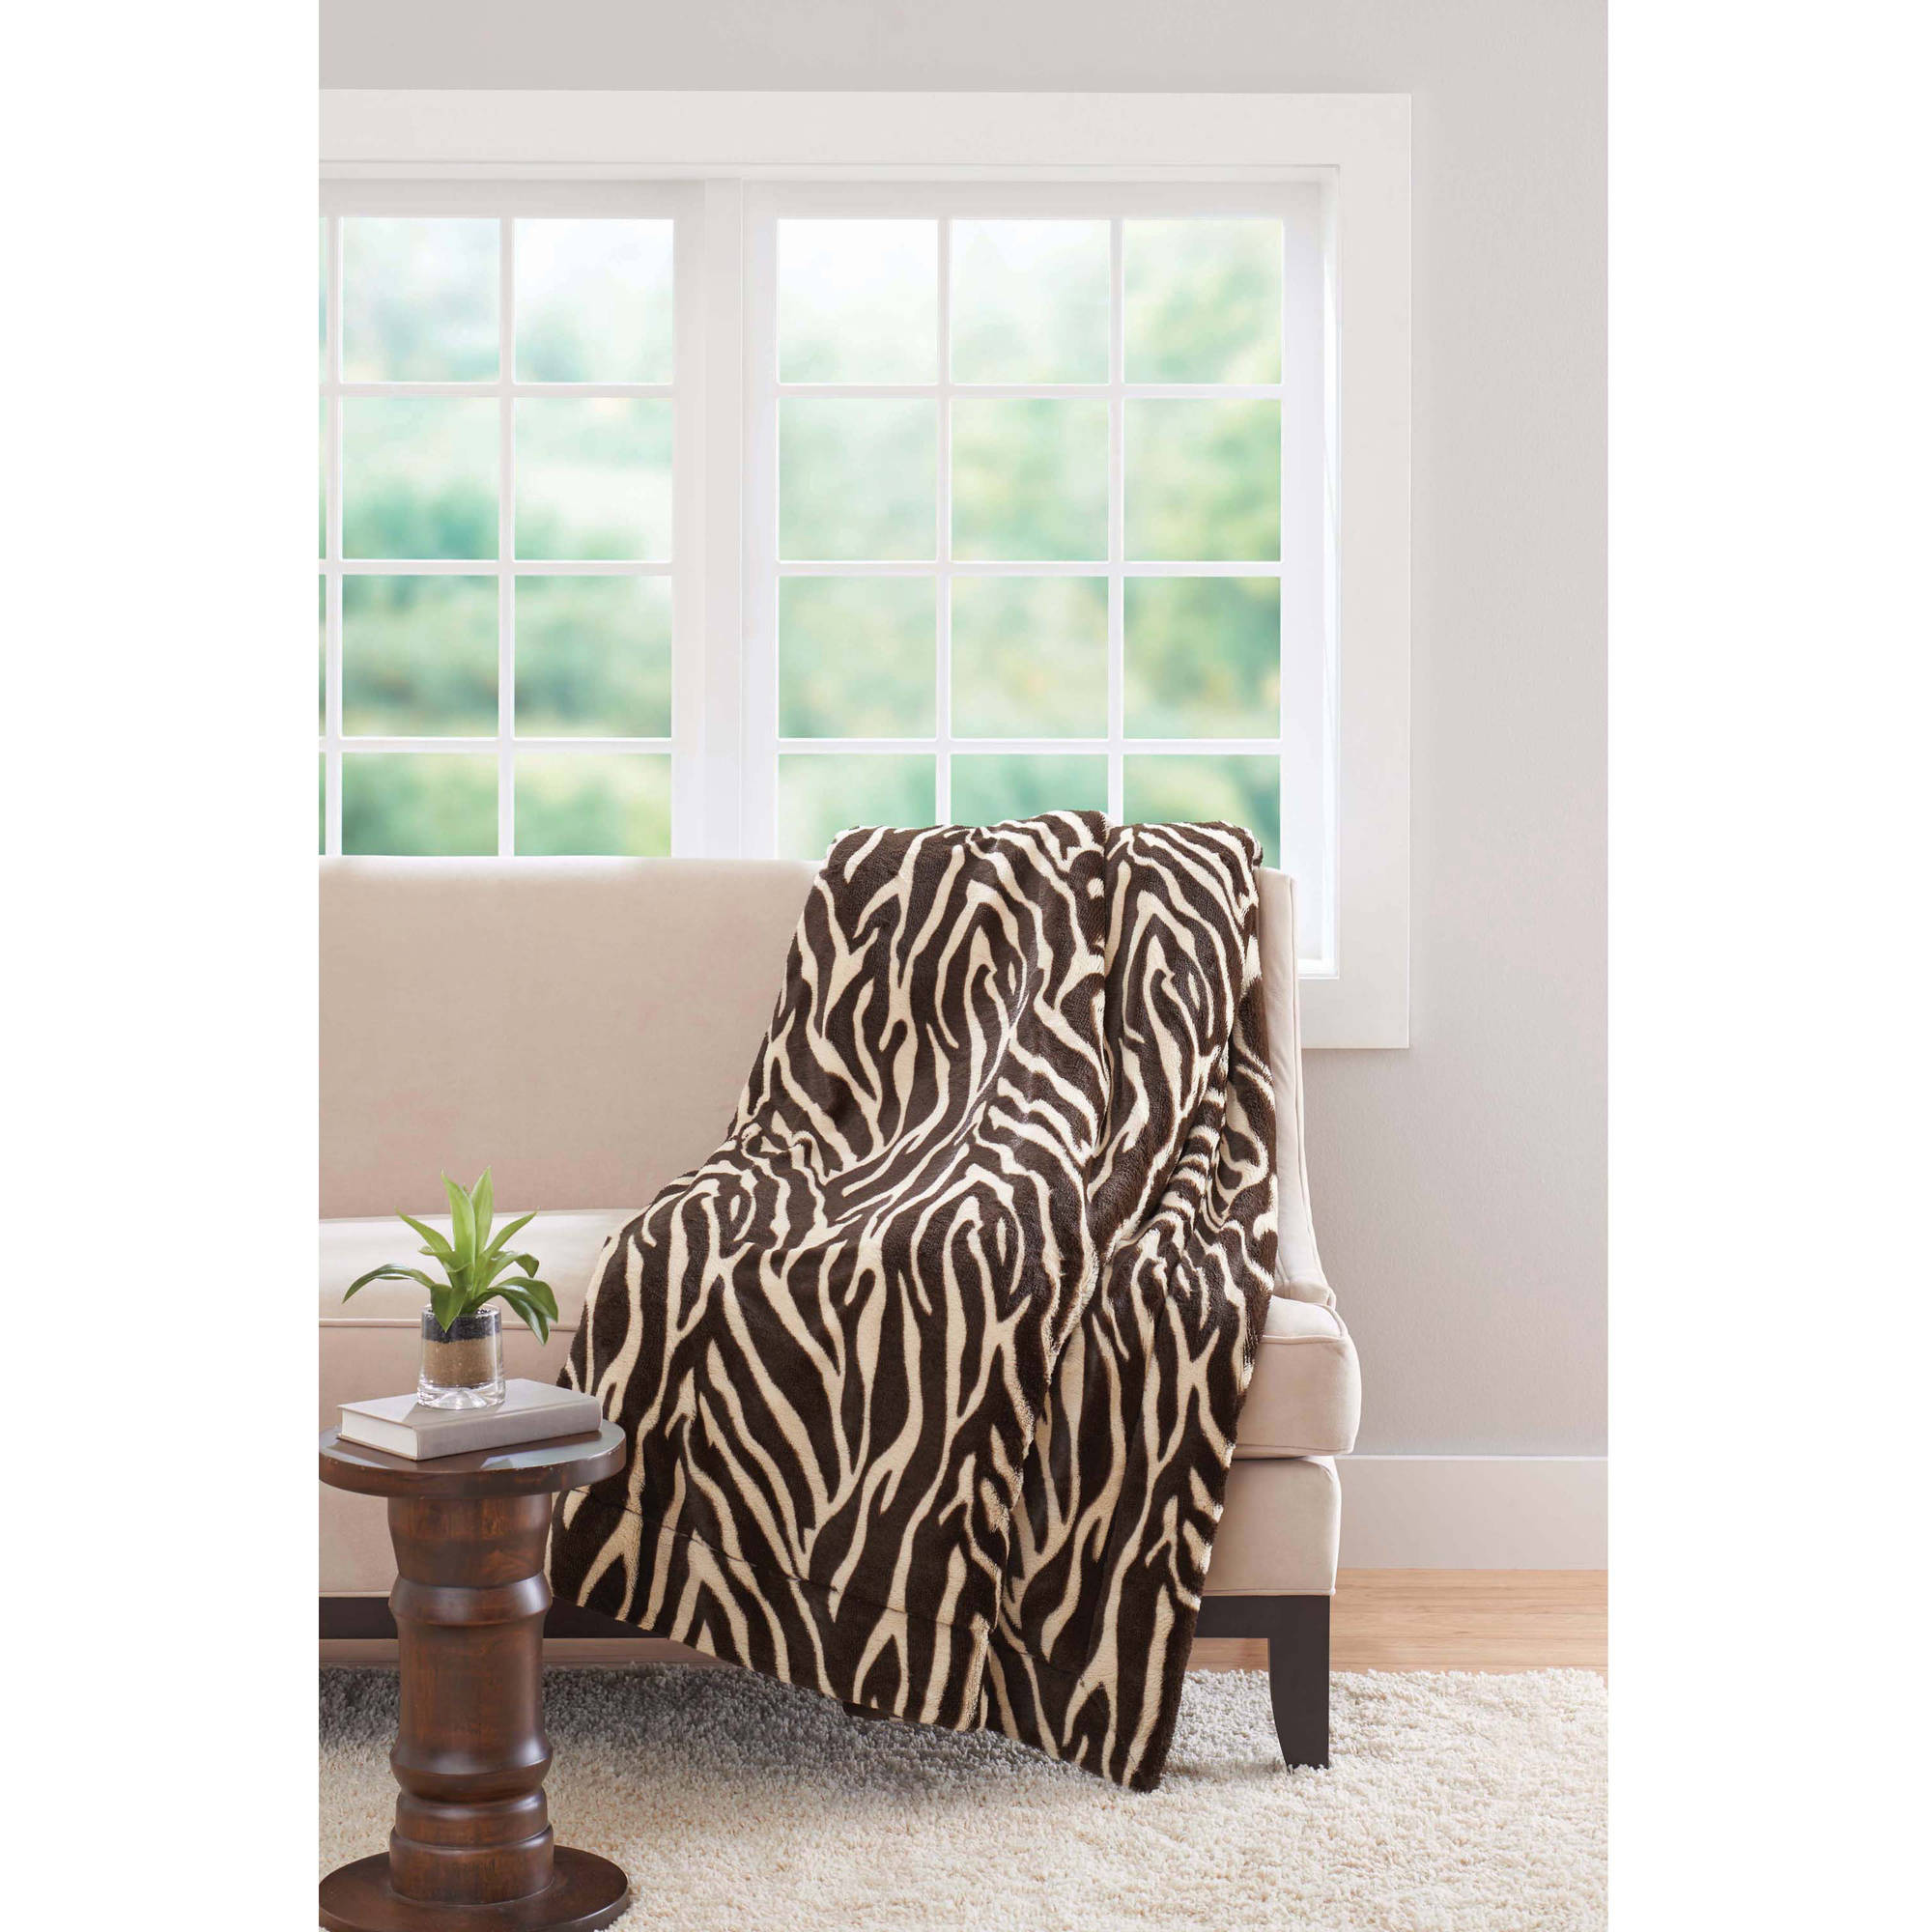 "Better Homes and Gardens 50"" x 60"" Faux Fur Throw Walmart"